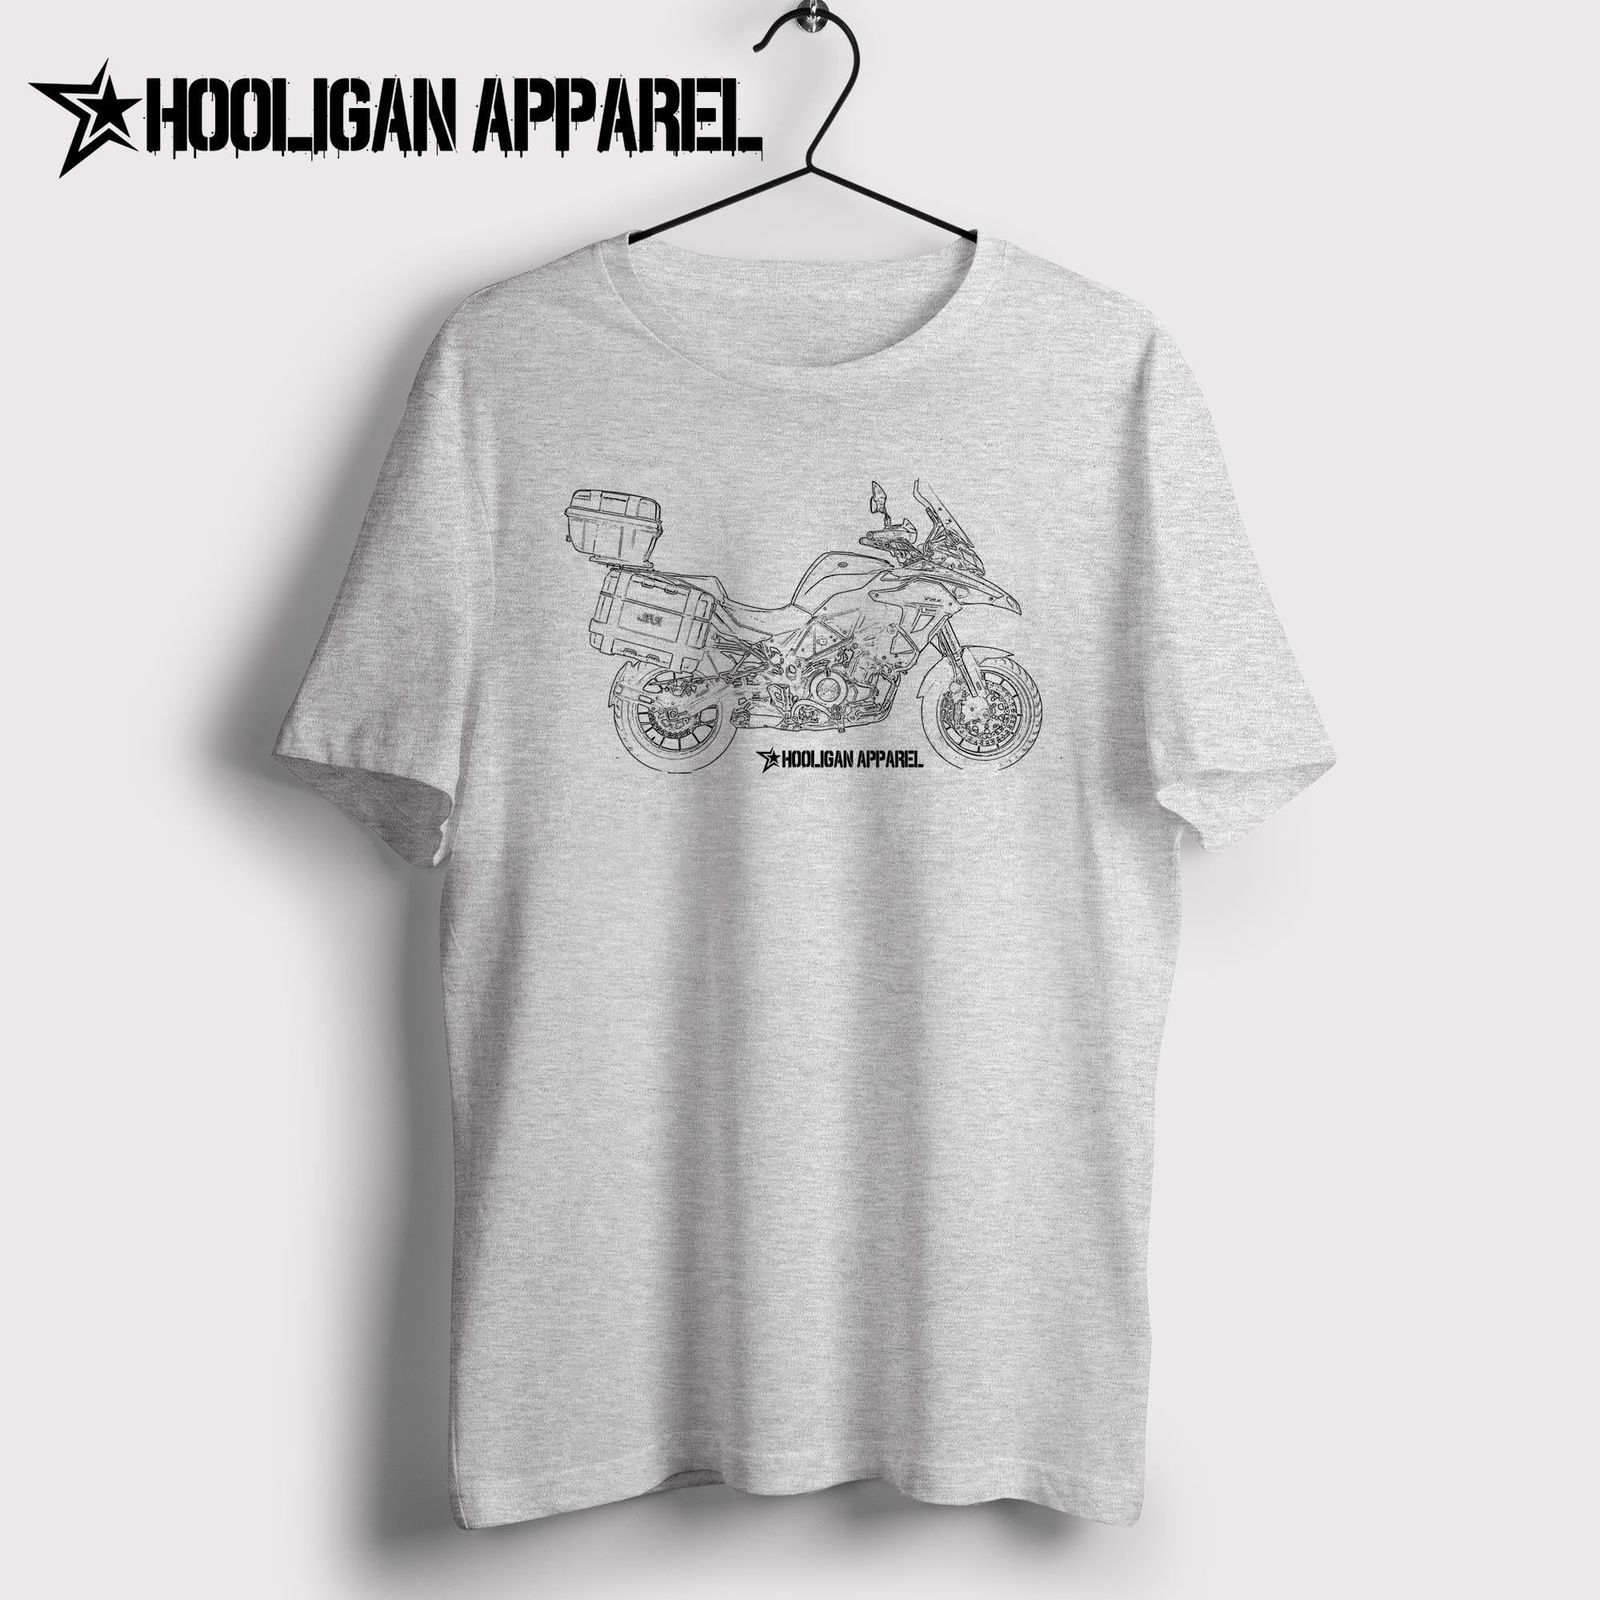 2019 New Tops Cool T Shirt Italian Classic Motorcycle Fans Trk 502 Adventure 2019 Inspired Motorcycle Artdesign Tshirt Online